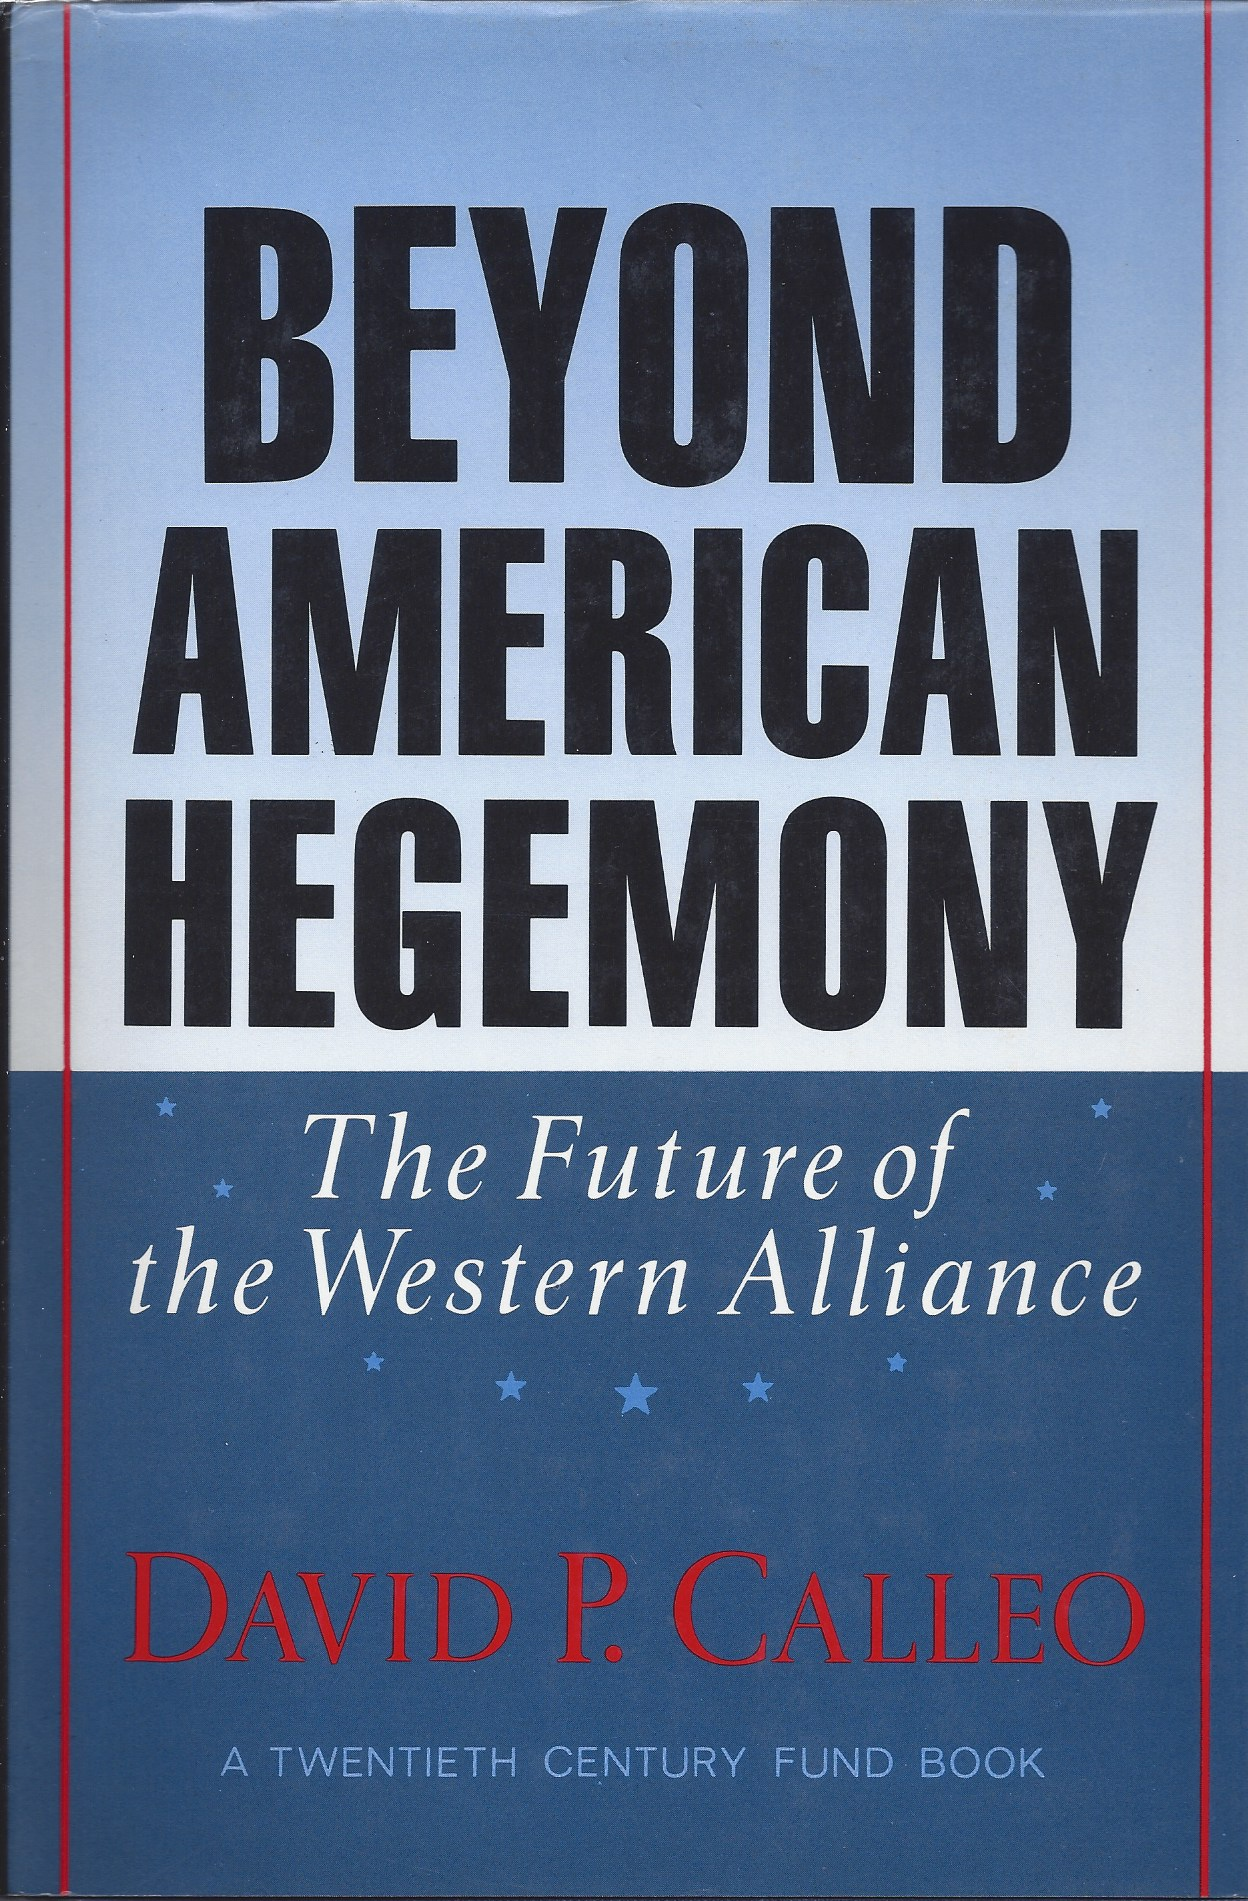 Image for Beyond American Hegemony The Future of the Western Alliance